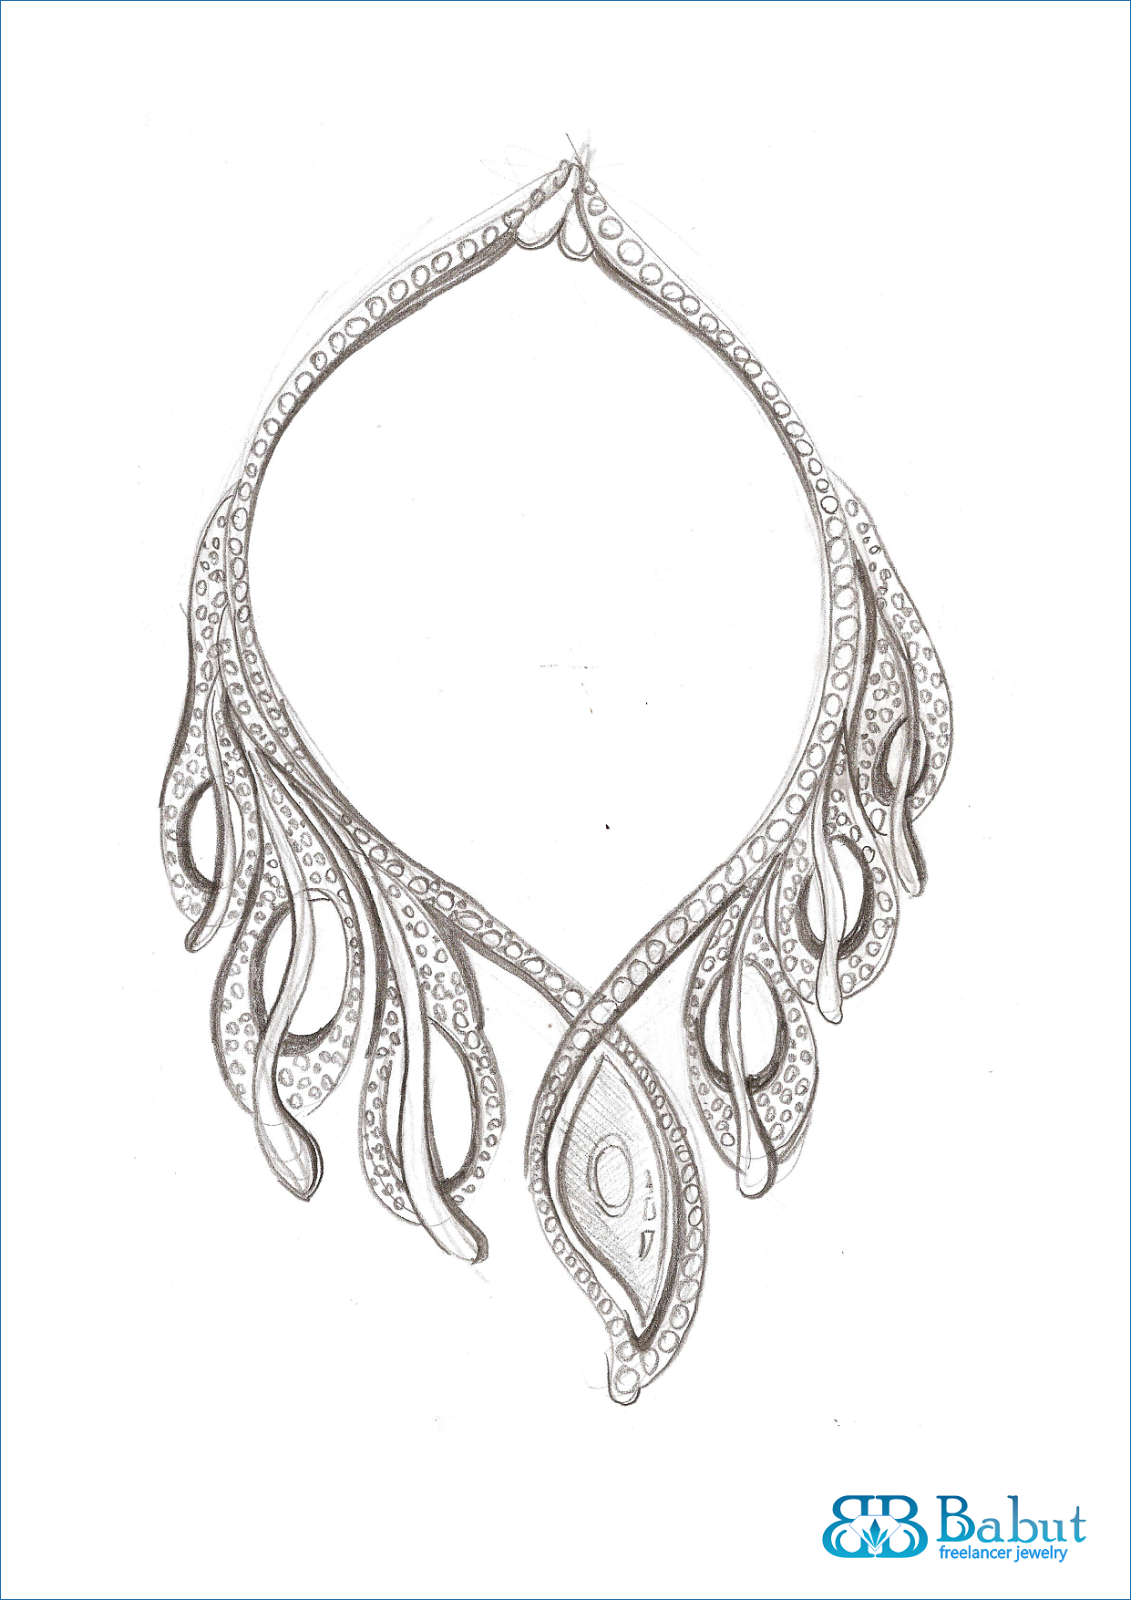 Sketch Jewelry - Babut Florin - Valentin August 2014